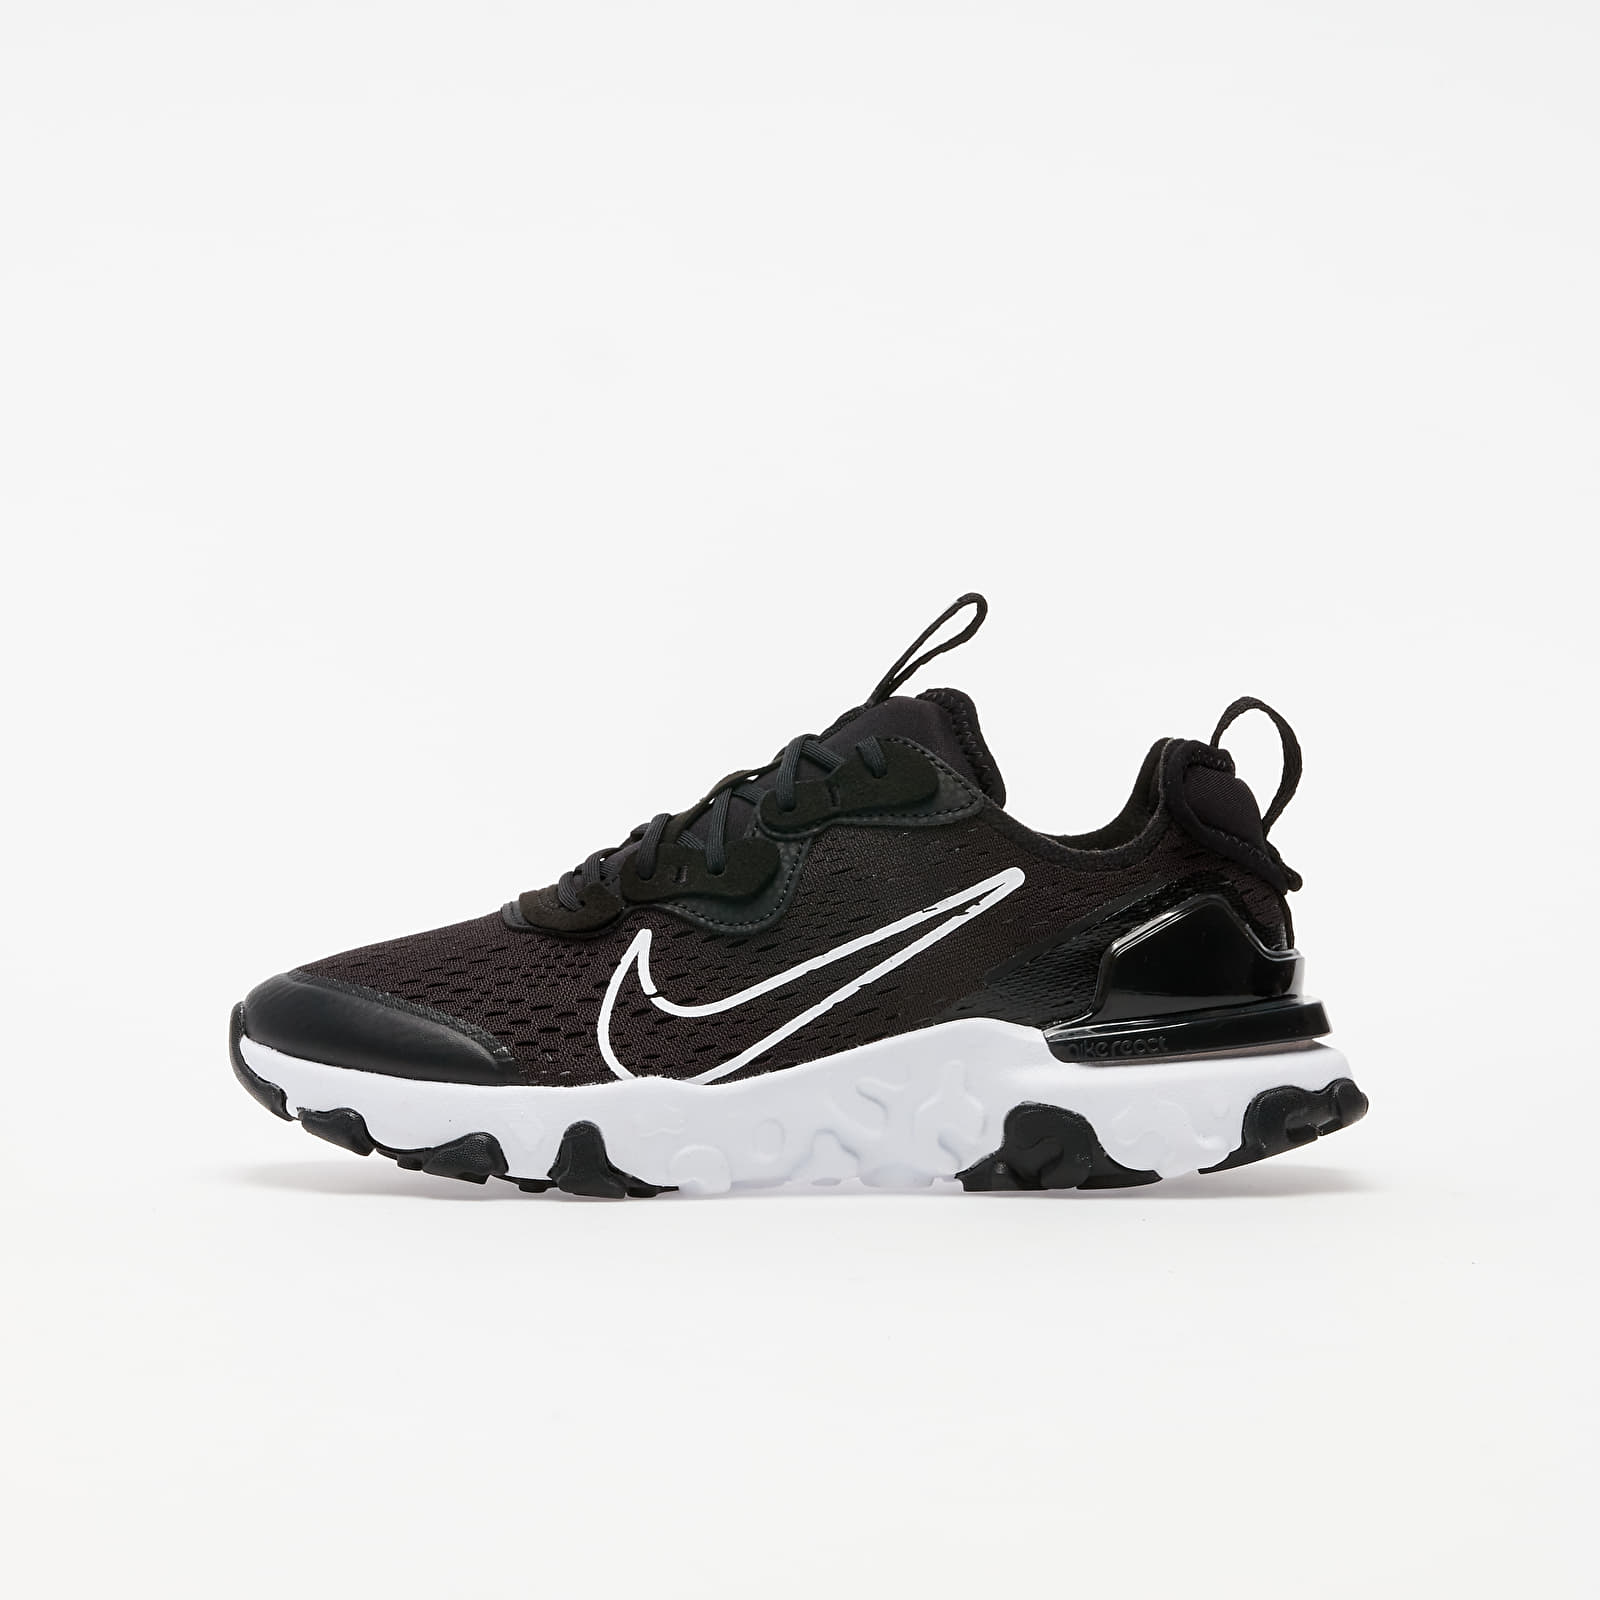 Încălțăminte copii Nike React Vision (GS) Black/ White-Black